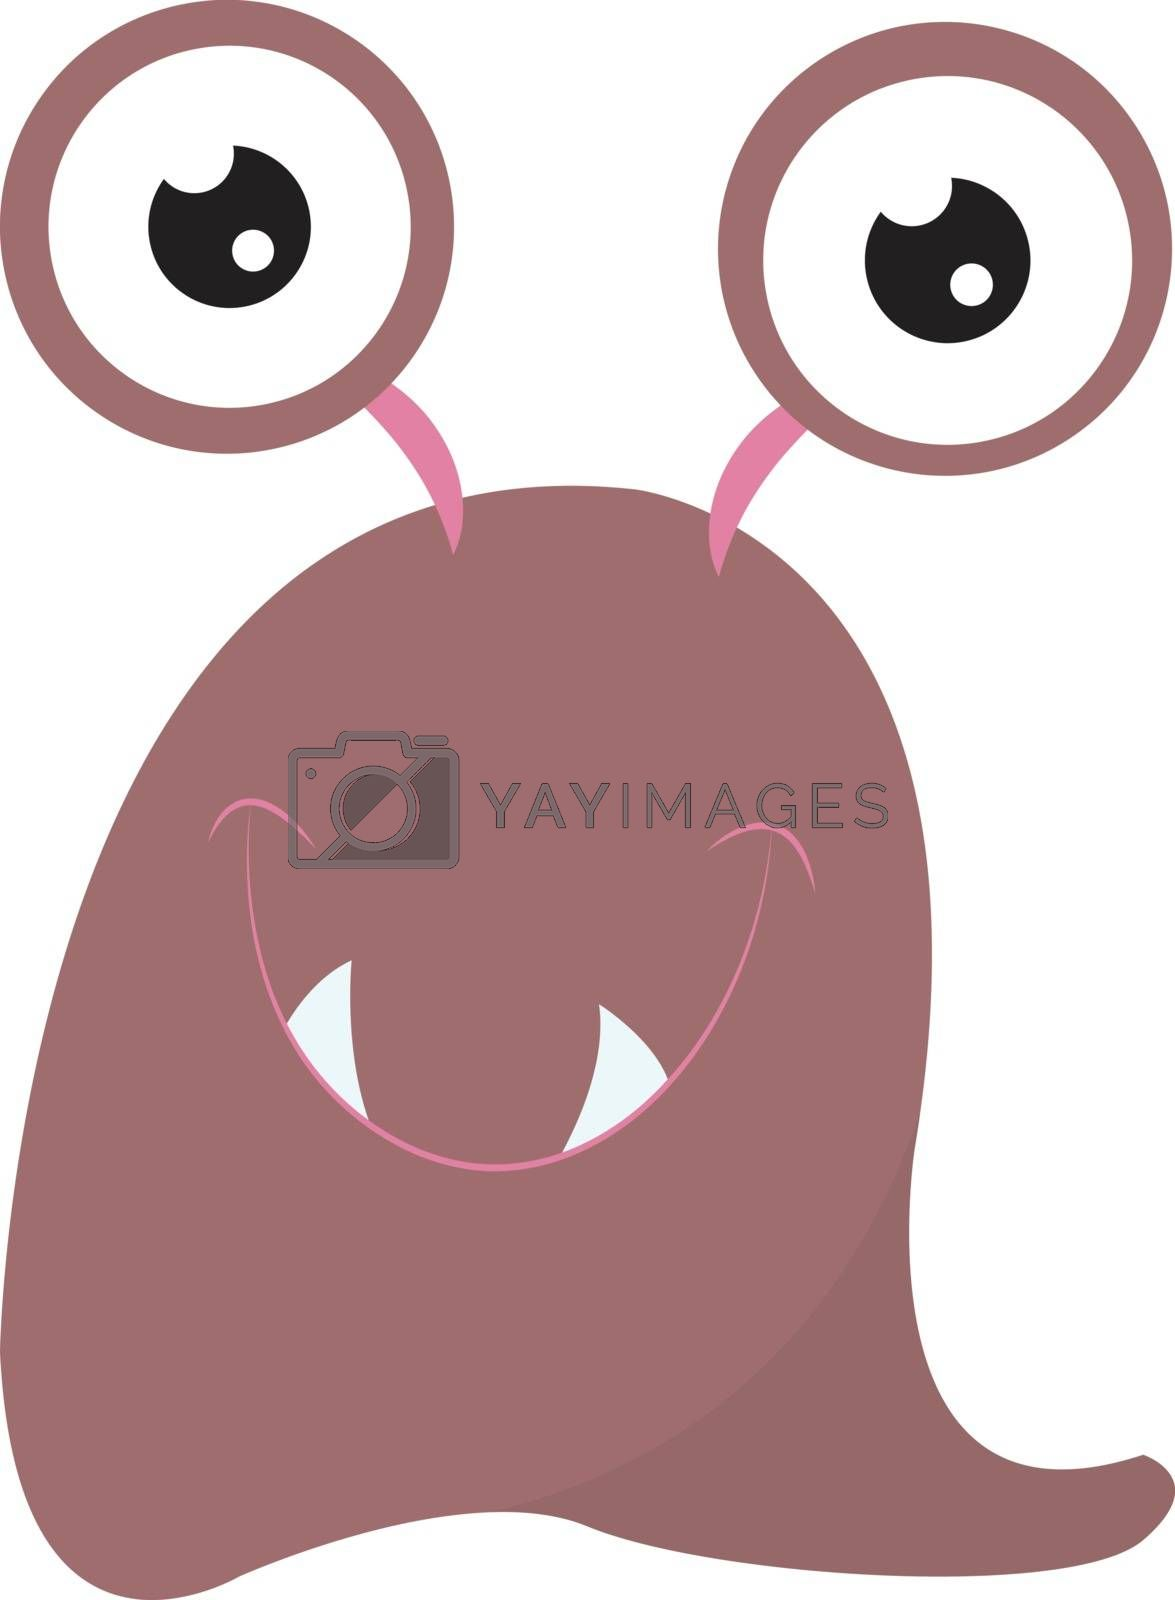 Royalty free image of Clipart of a pink-colored smiling monster with two eyes vector o by Morphart